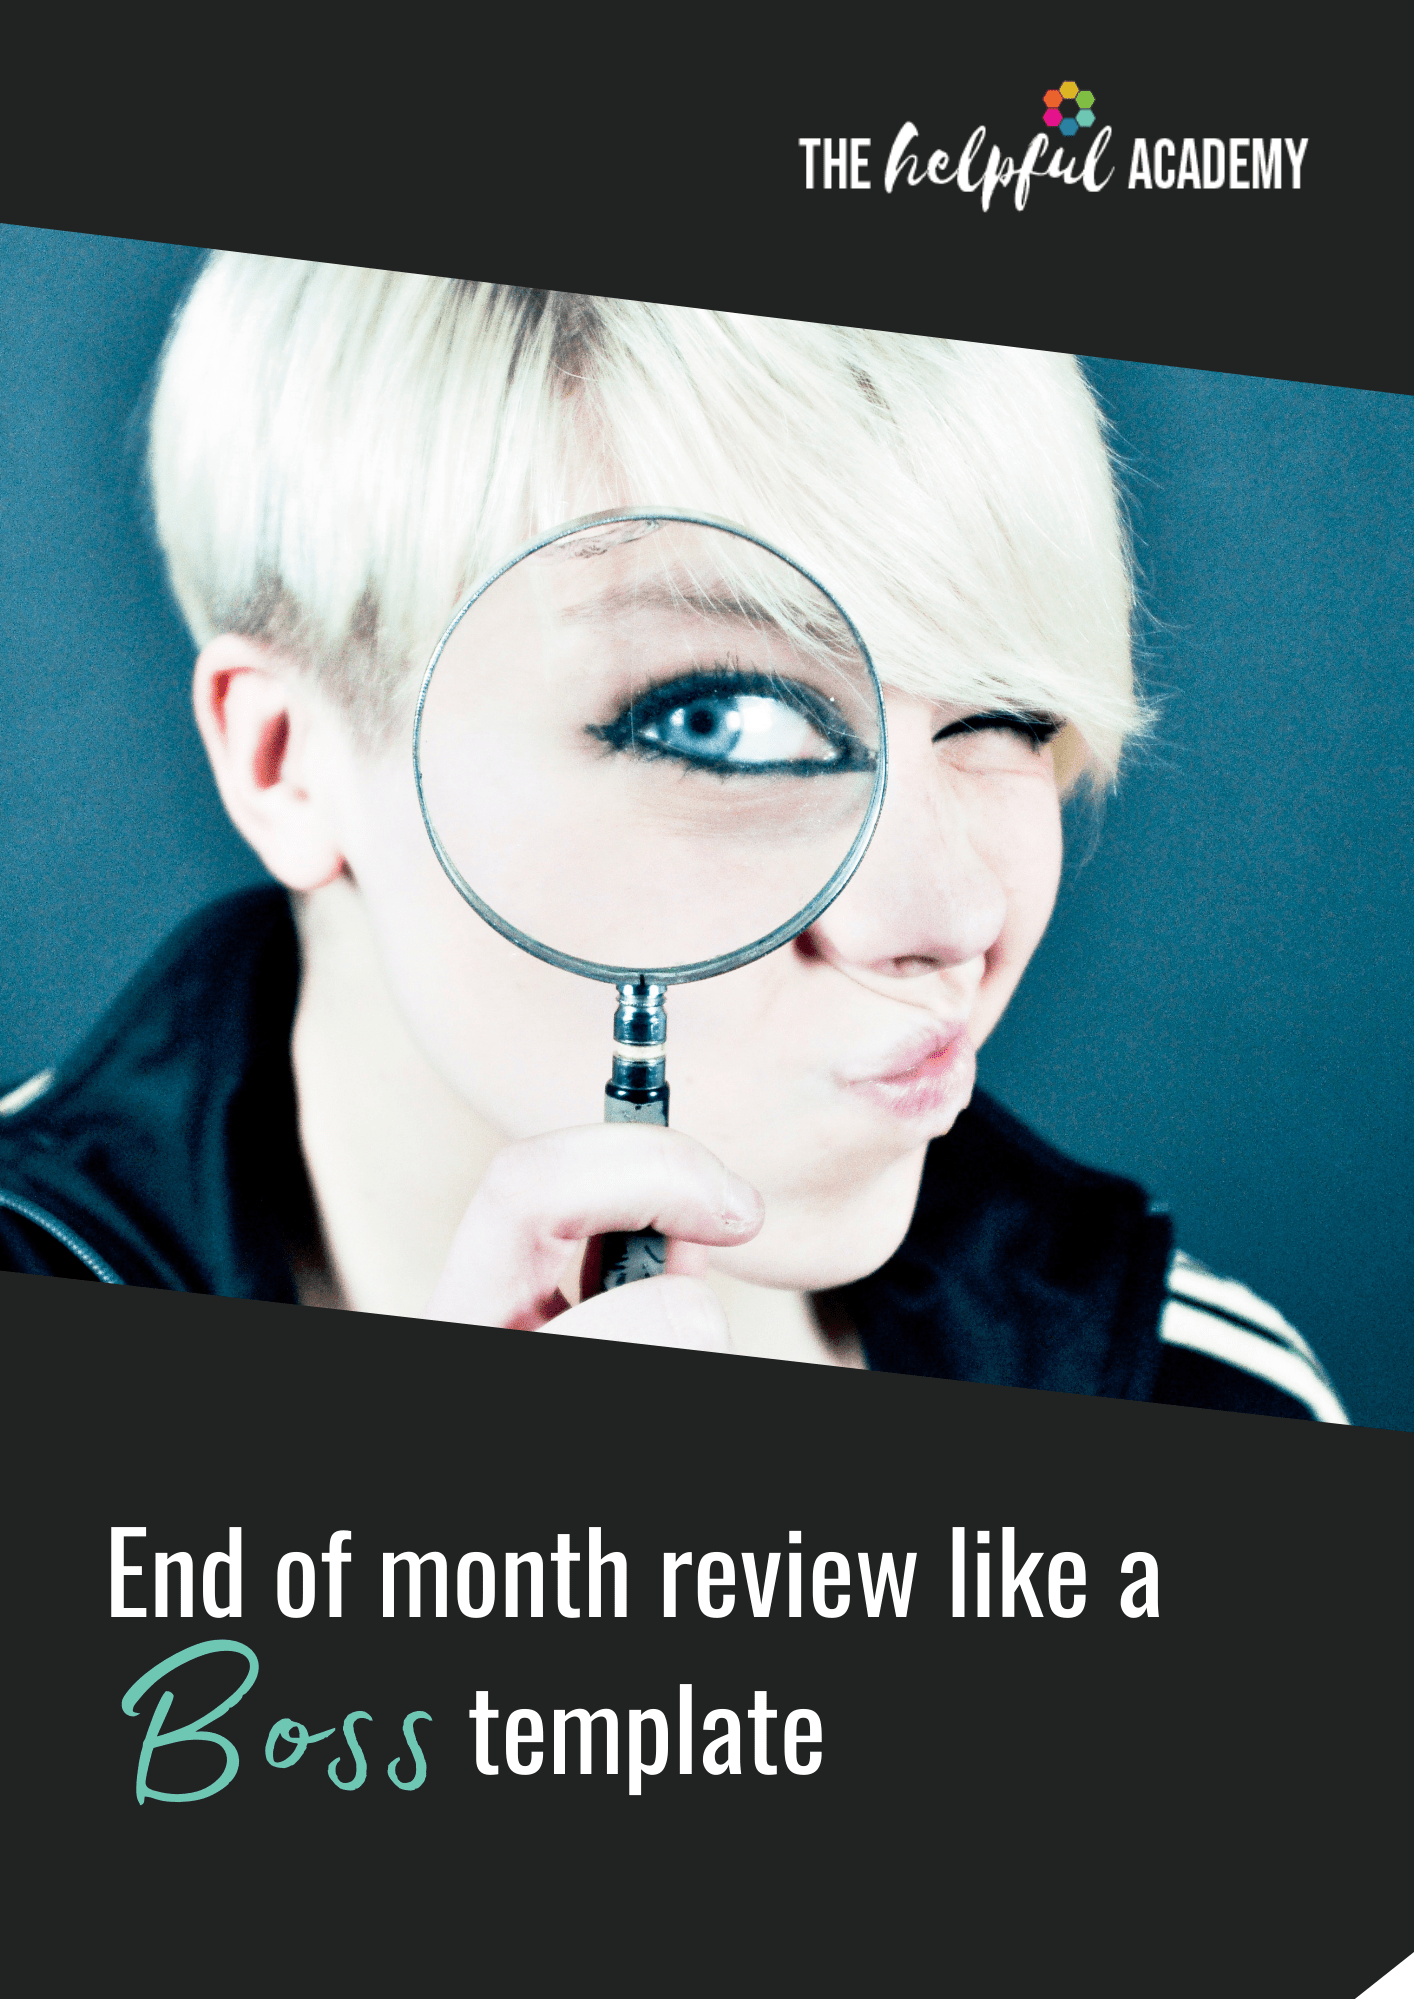 Why do an end of month review